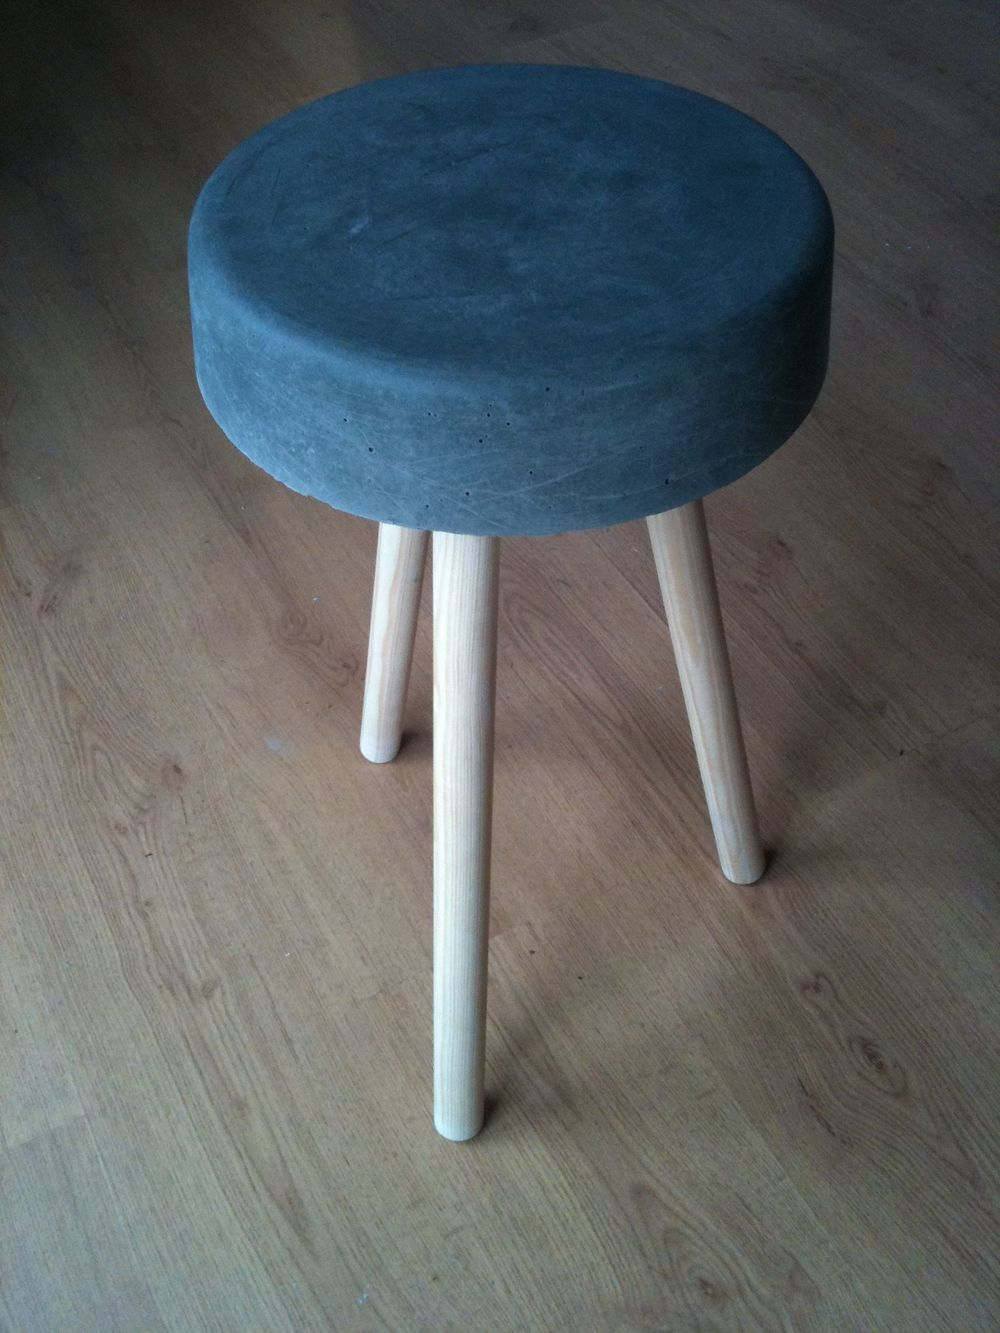 7. …and voila (or 'ulla' for you Jeff Wayne fans) We have our own DIY concrete stool / replica Maunsell Sea Fort!